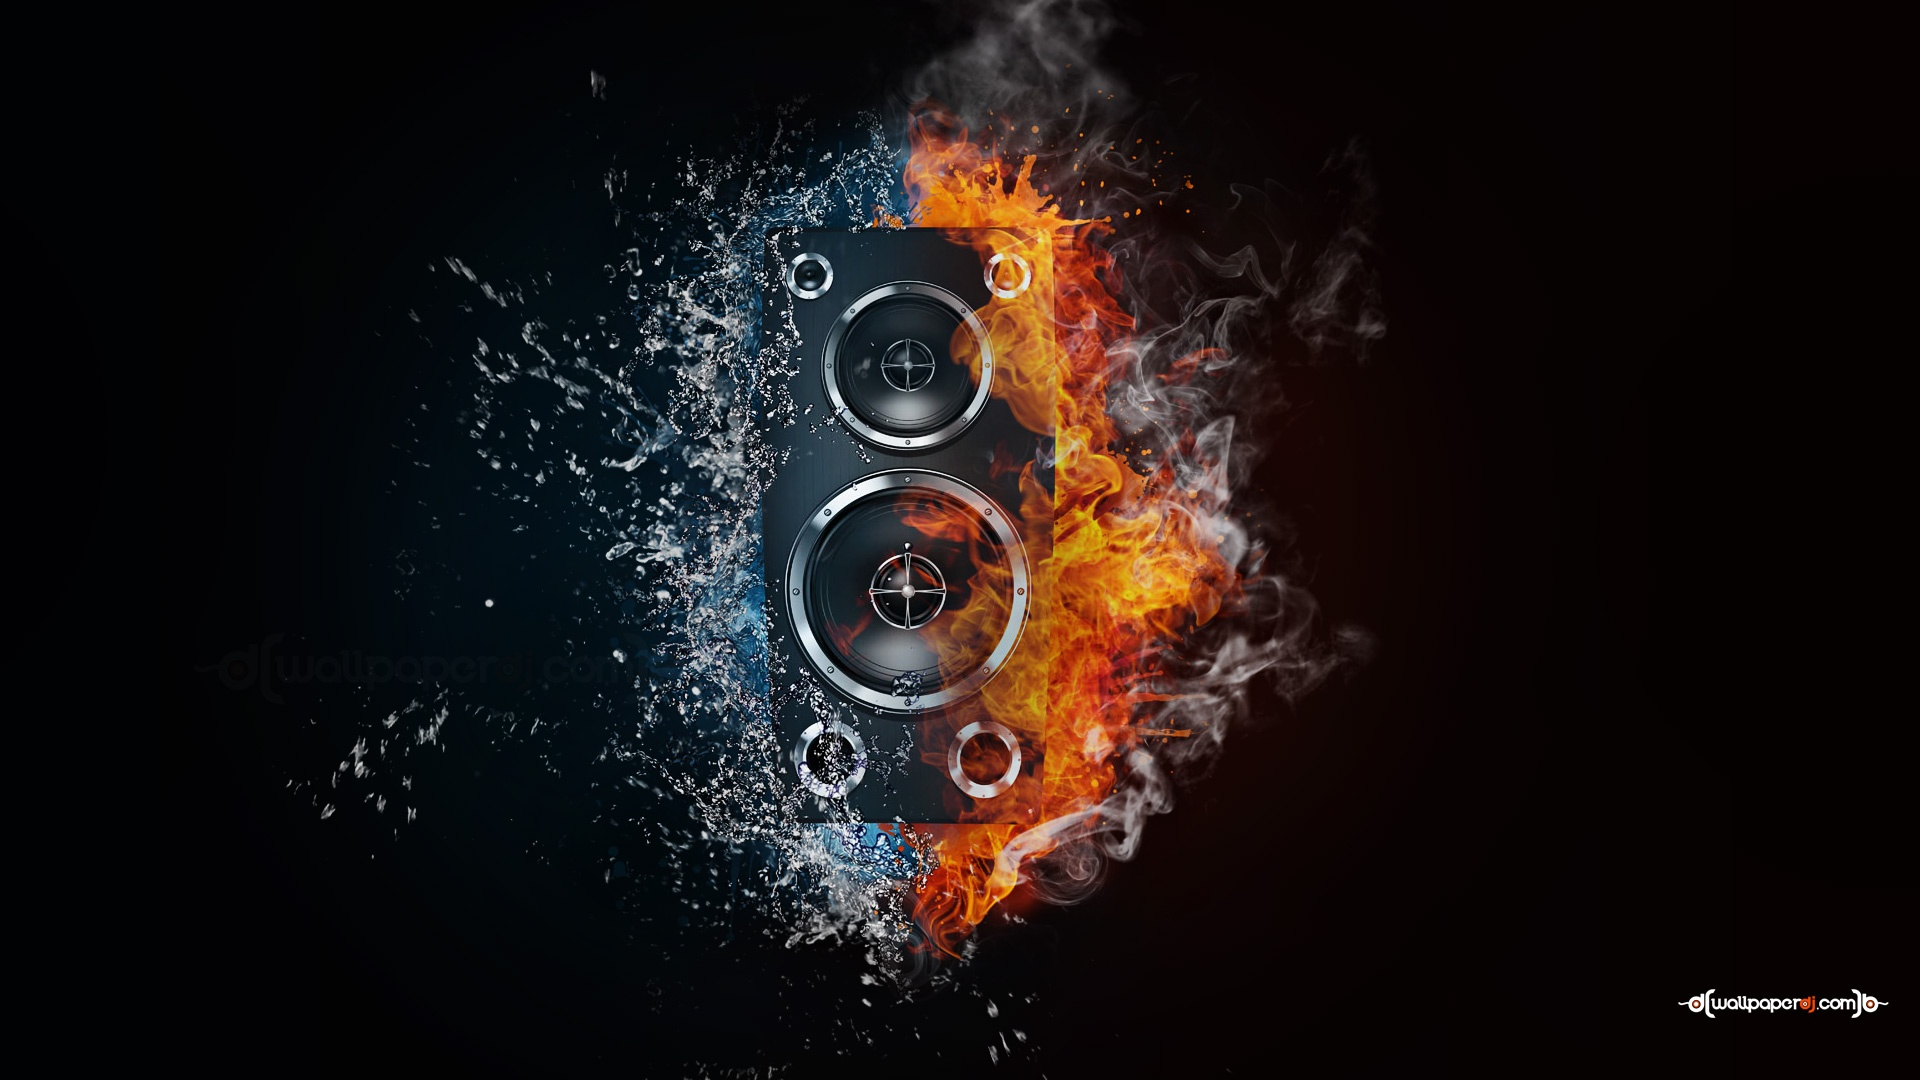 1920x1080 Audio Restoration Wallpaper Music And Dance HD Wallpapers Download Free Images Wallpaper [1000image.com]